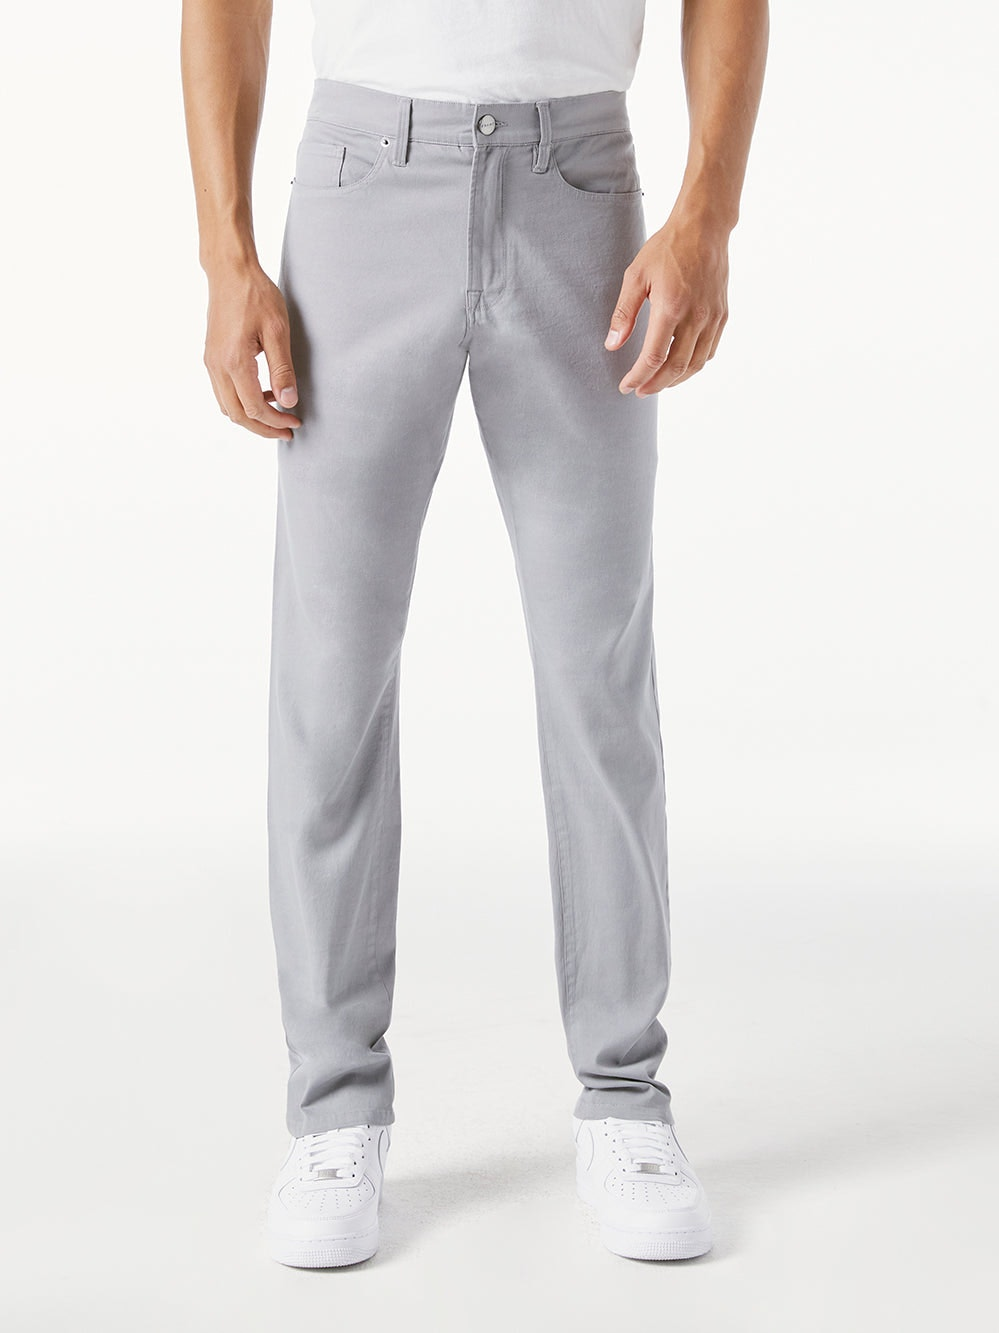 pant front view